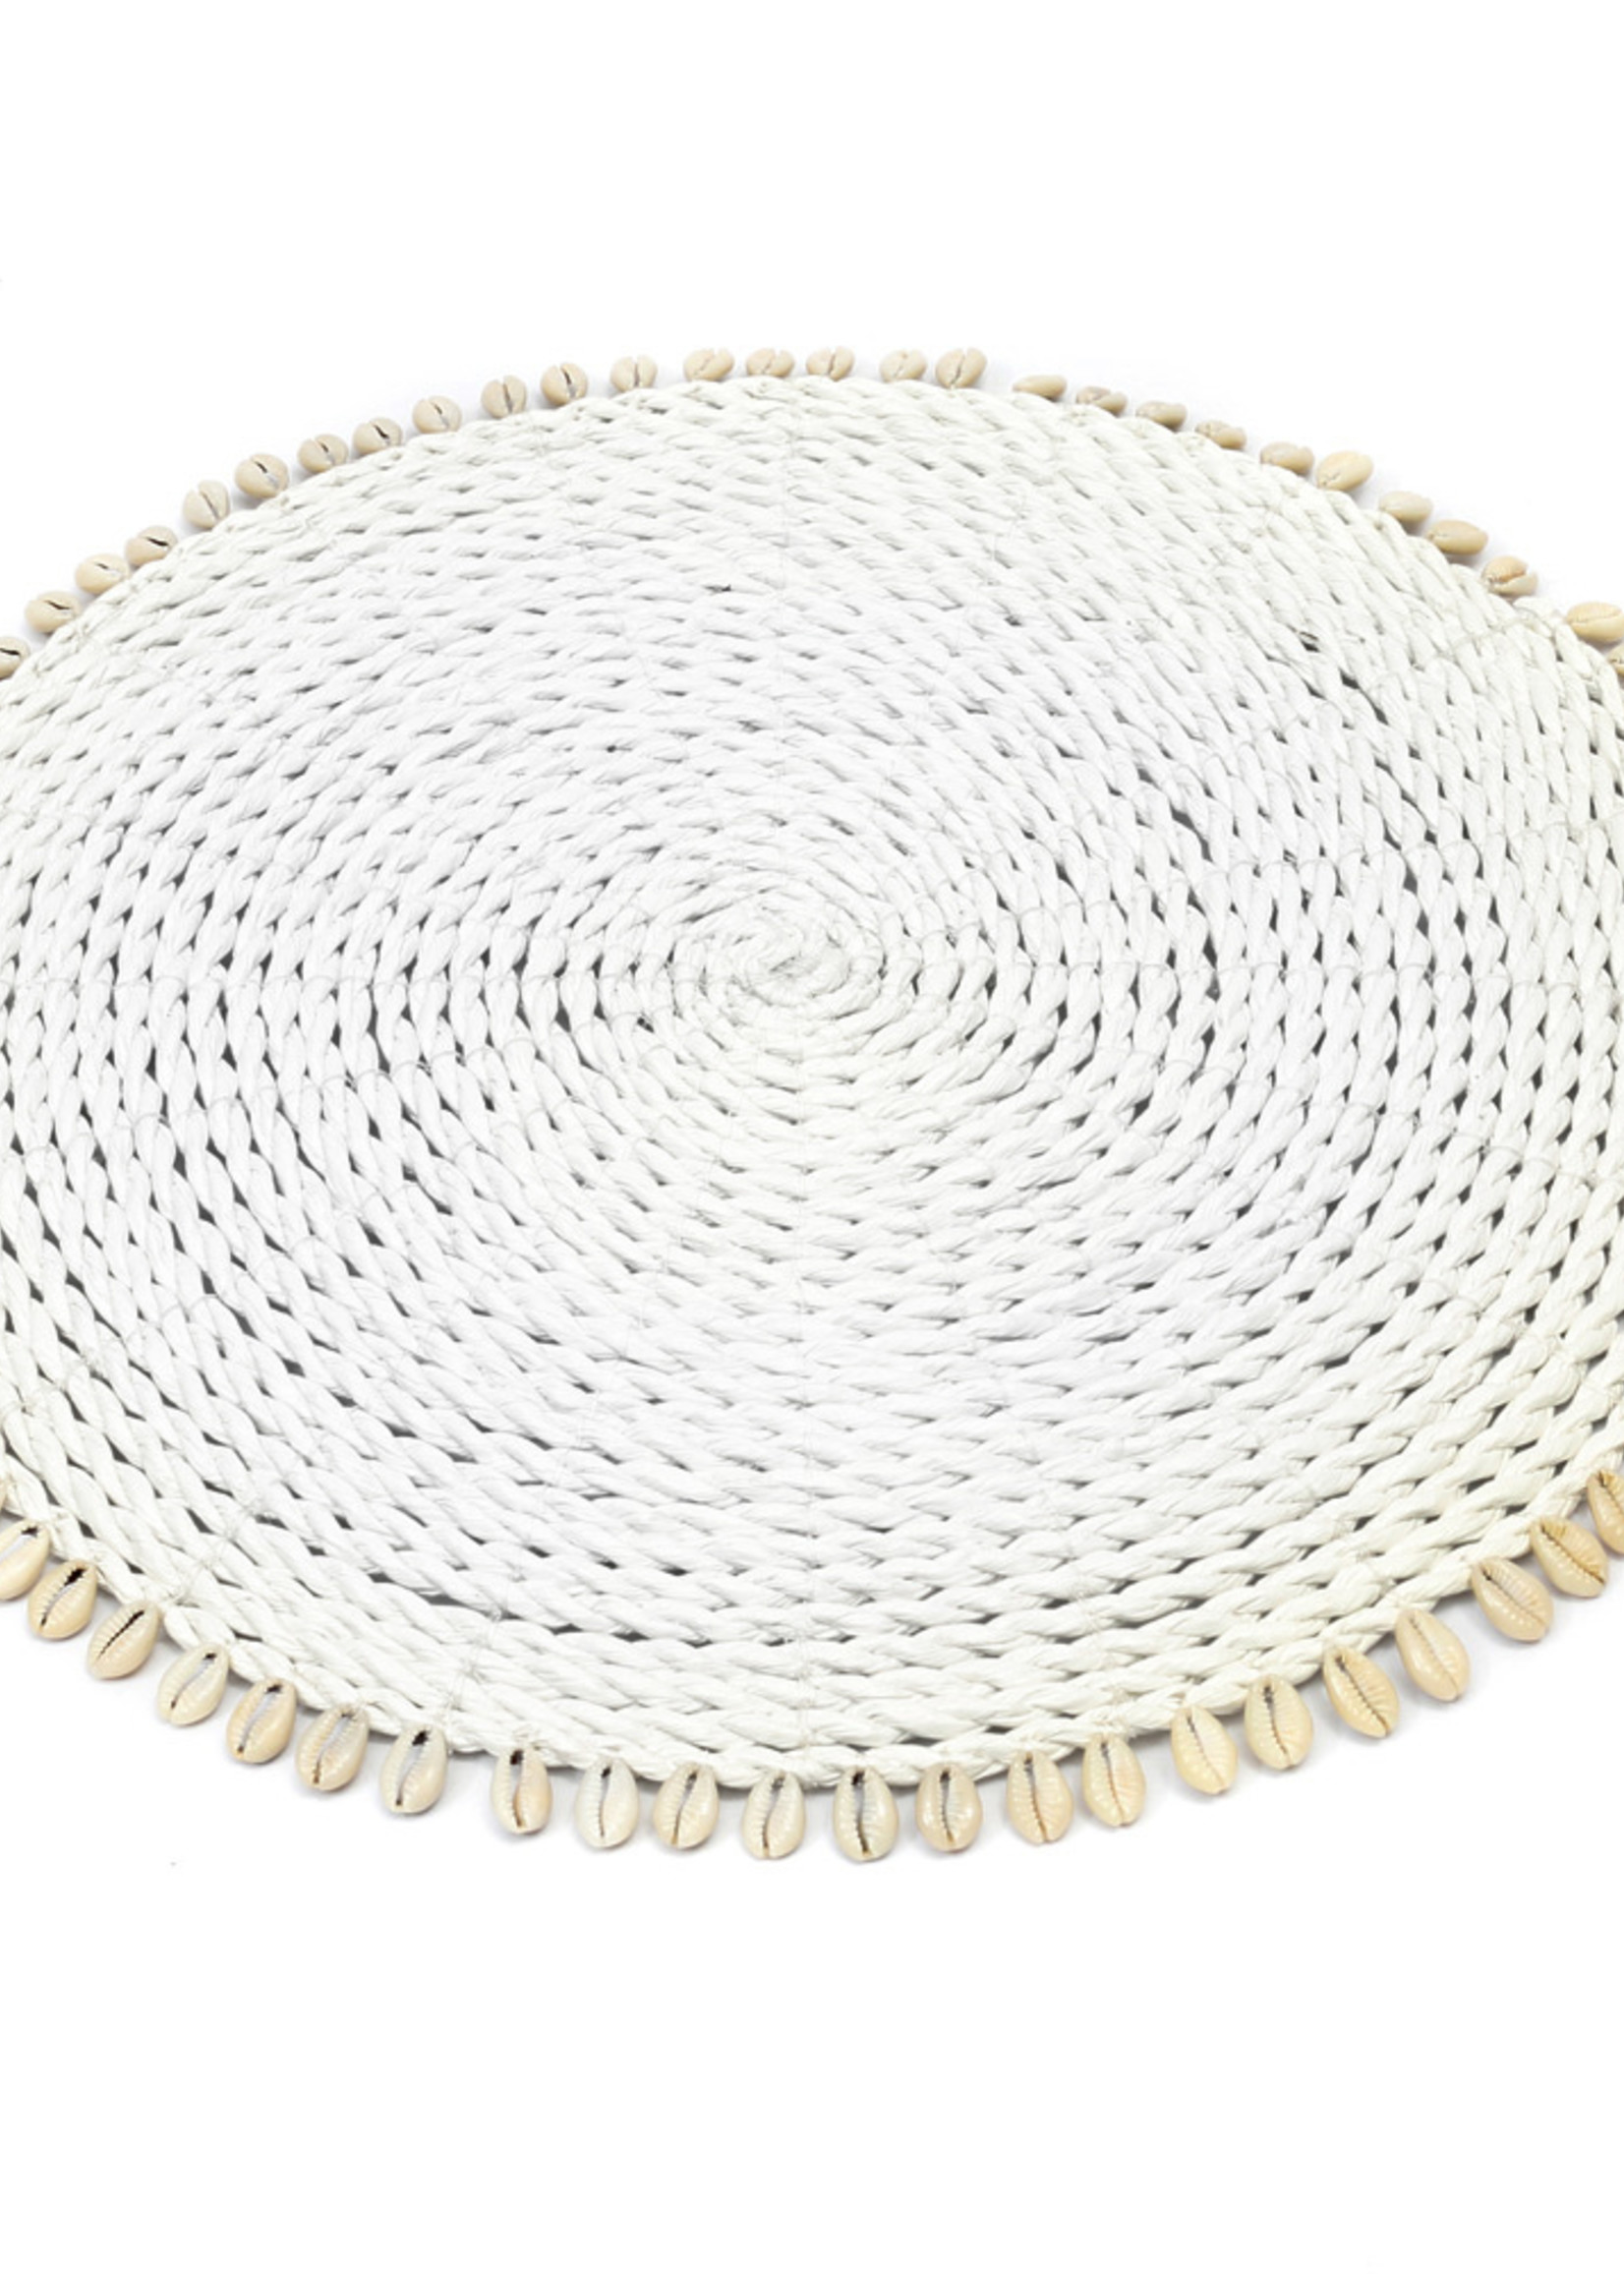 The Seagrass Shell Placemat - White